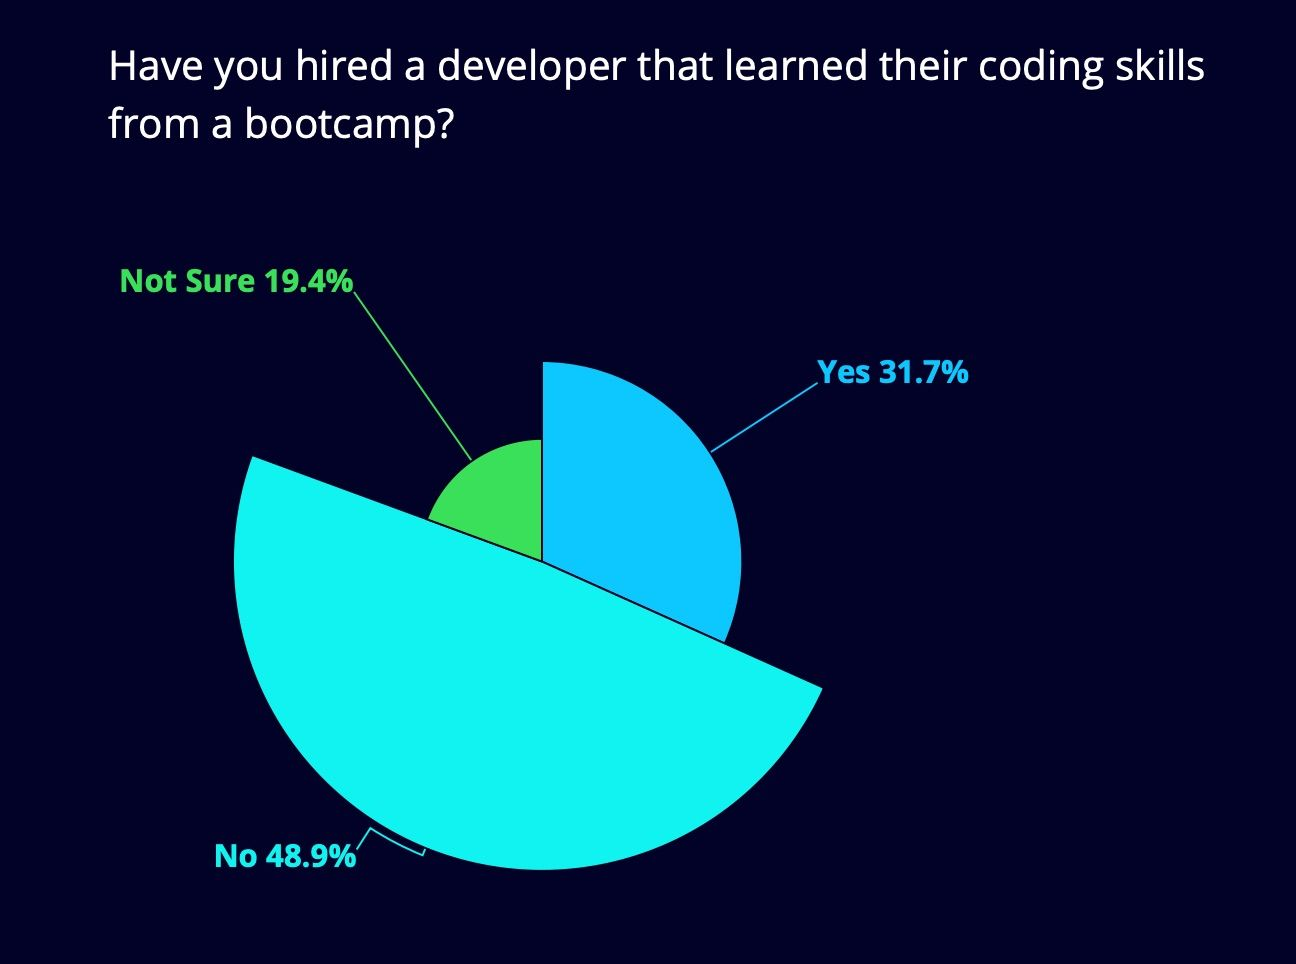 Going to a coding Bootcamp increases your chances of getting hired